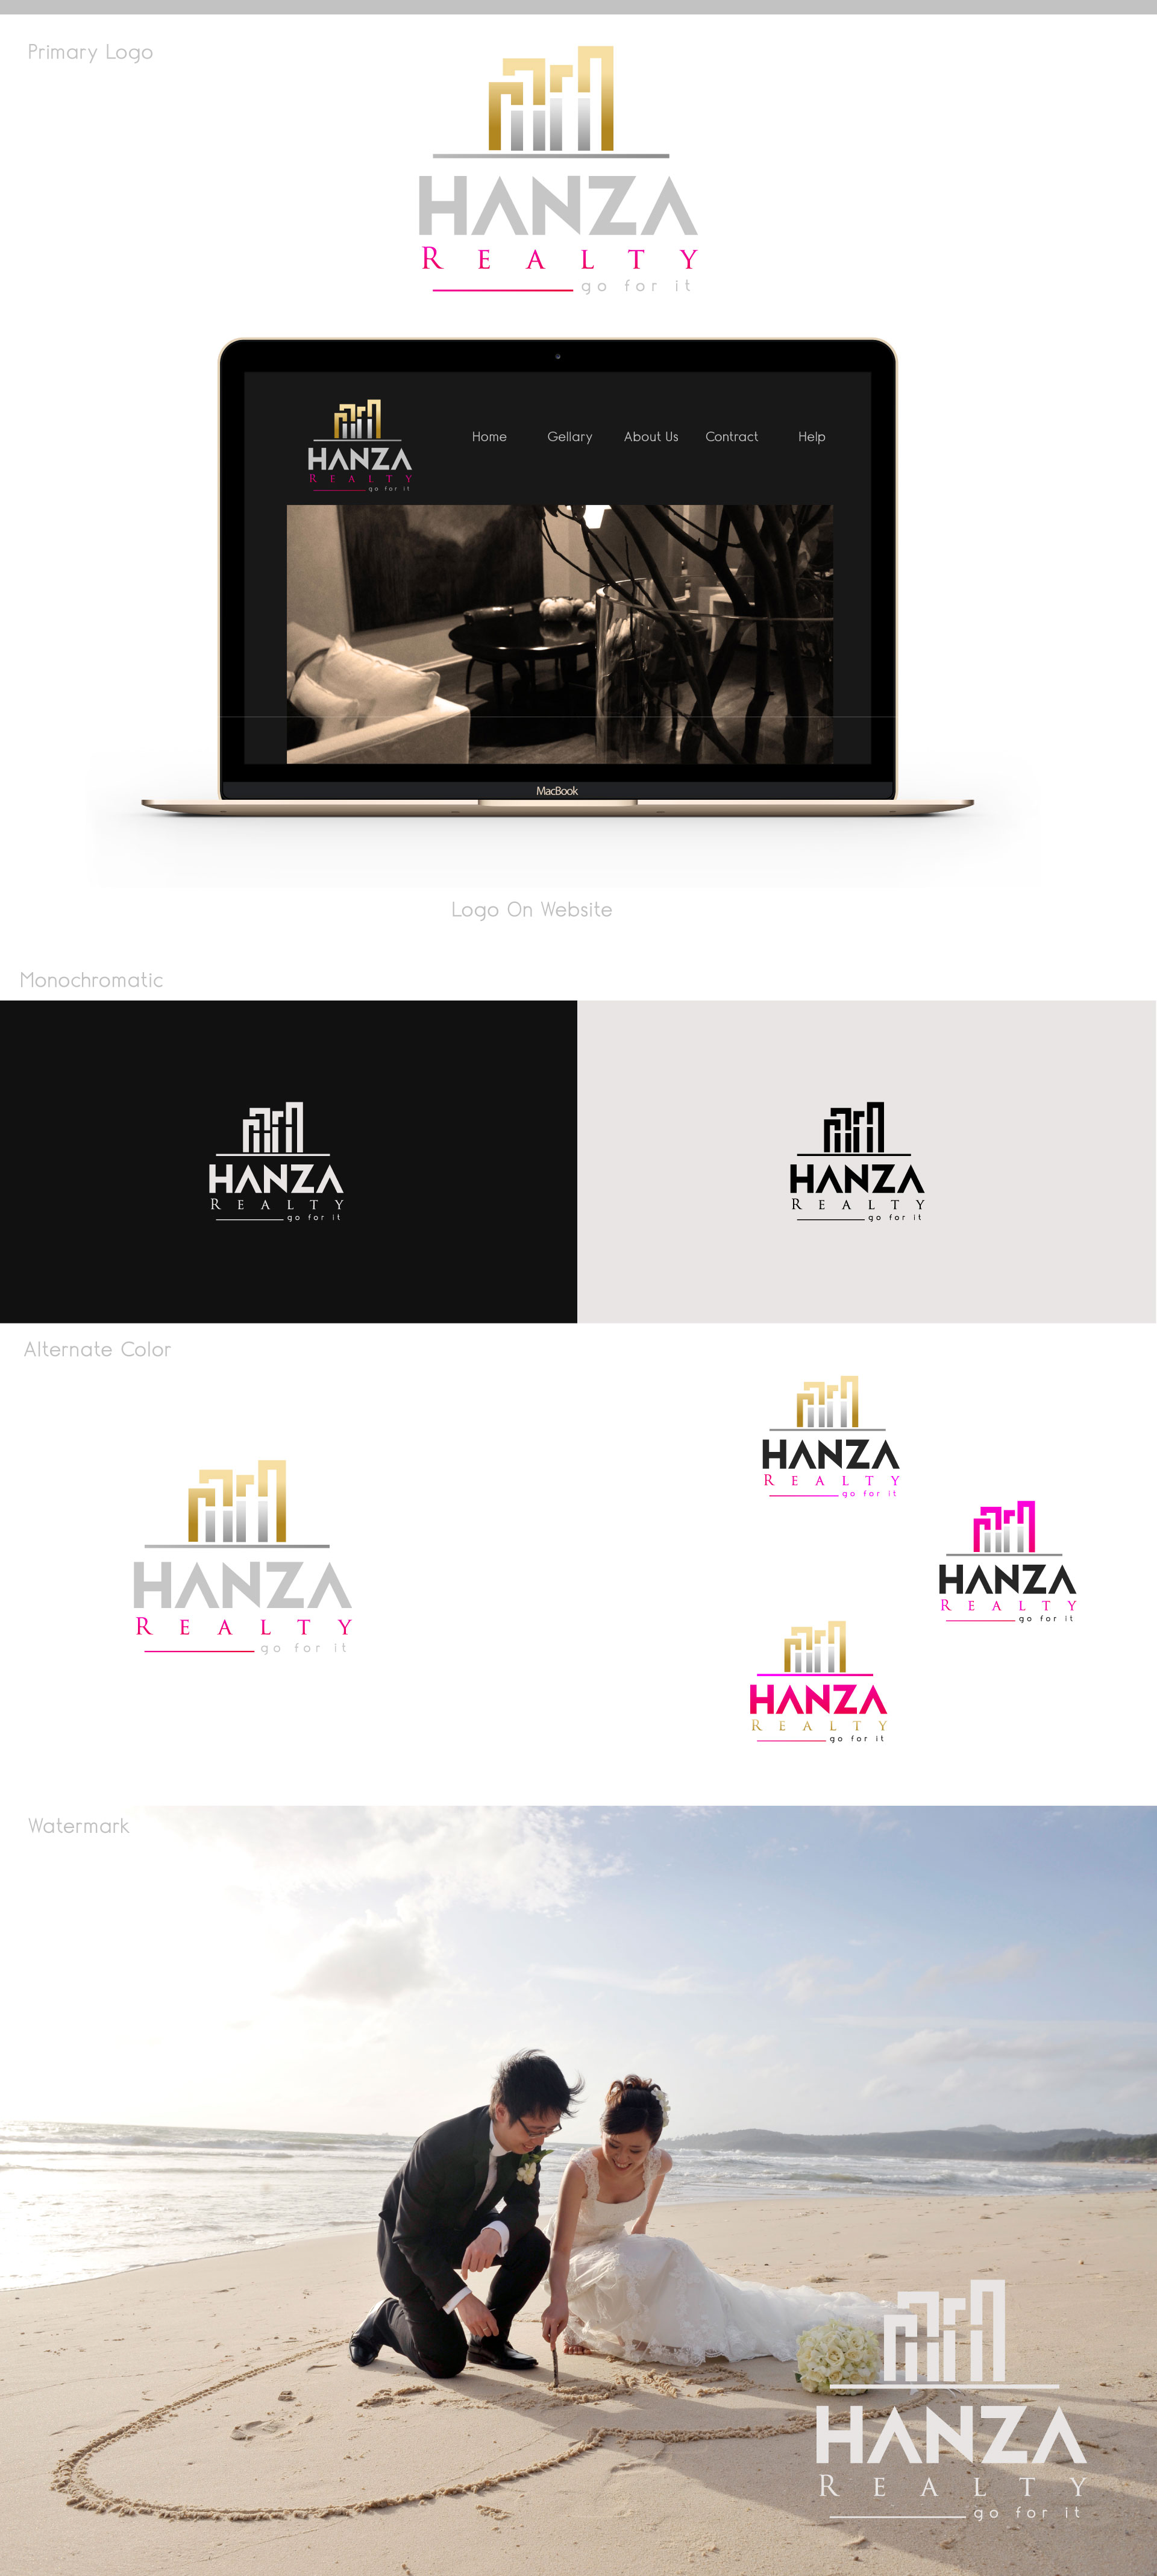 Logo Design by M h Rubel - Entry No. 327 in the Logo Design Contest Logo Design for Hanza Realty.